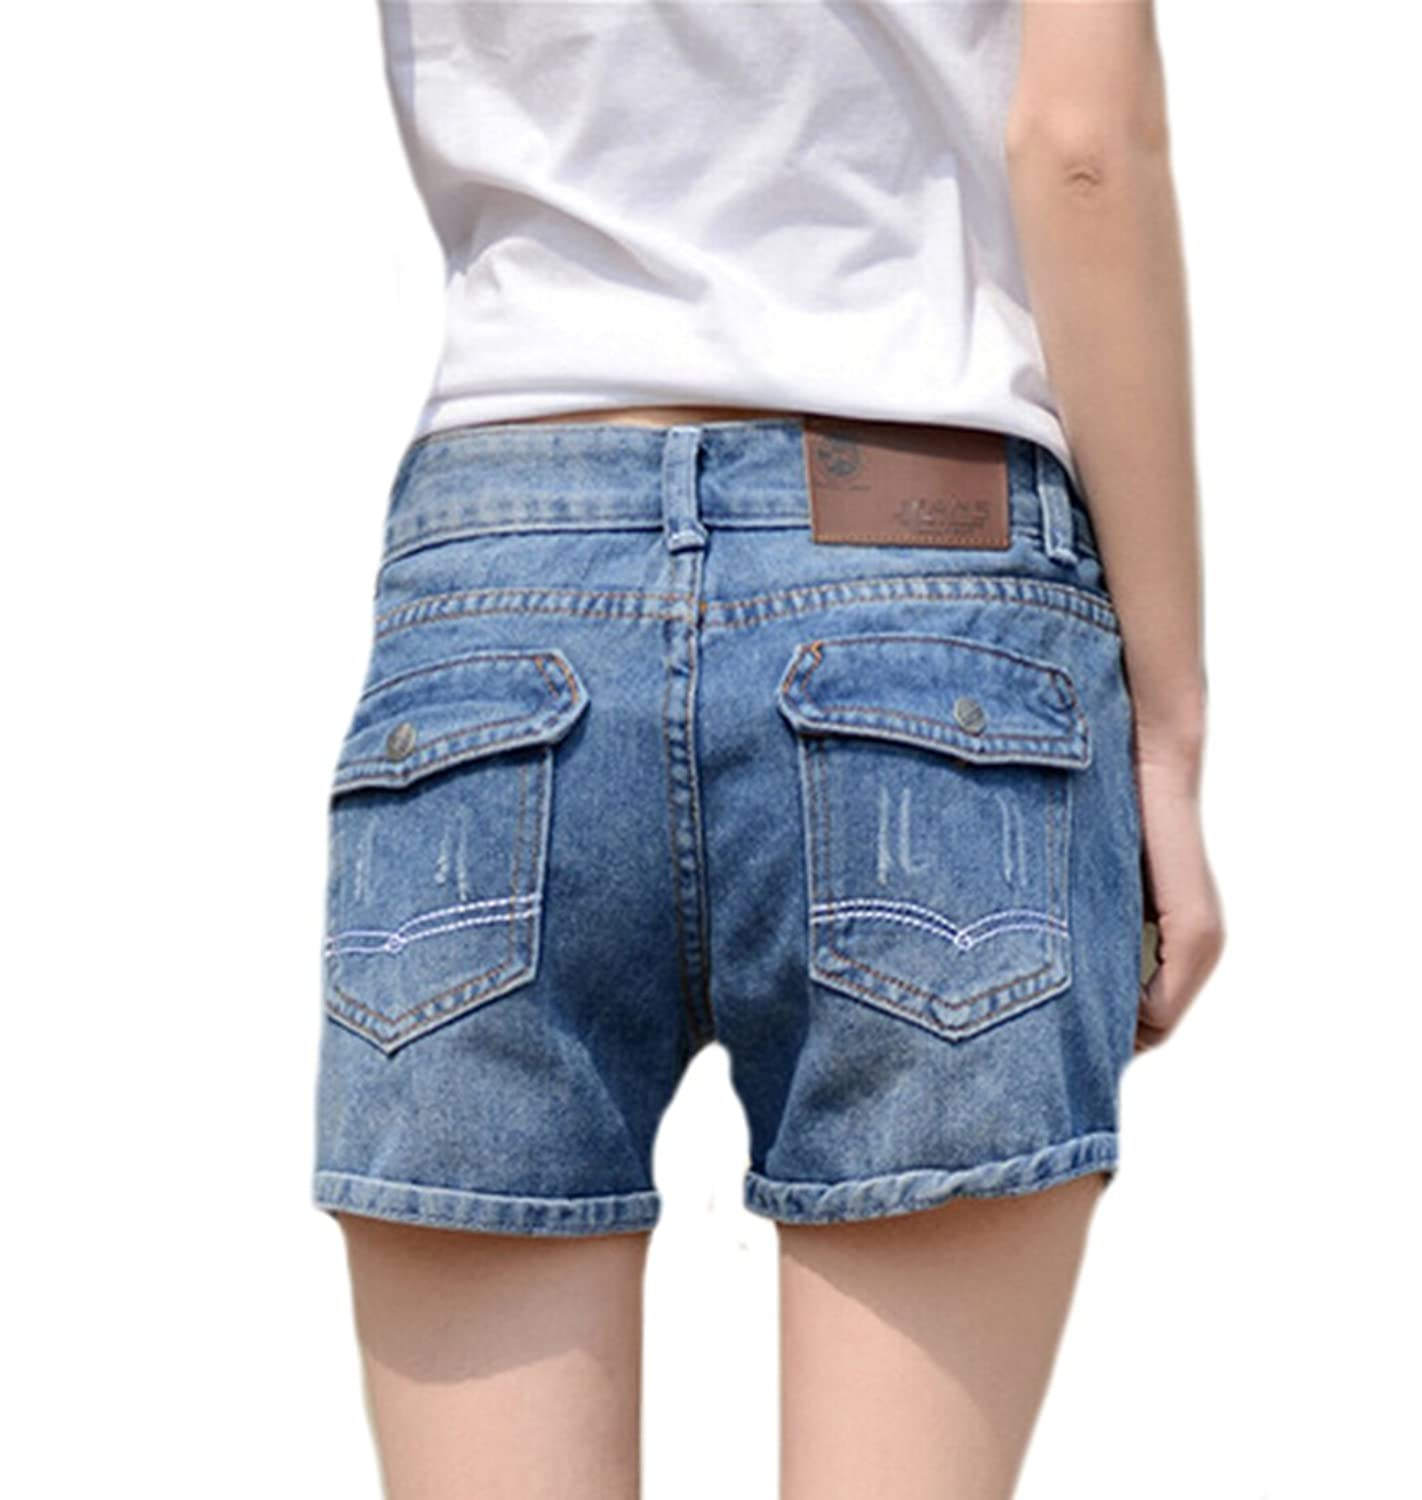 Vska Womens Faded Pockets Casual Loose Hot Jeans Shorts